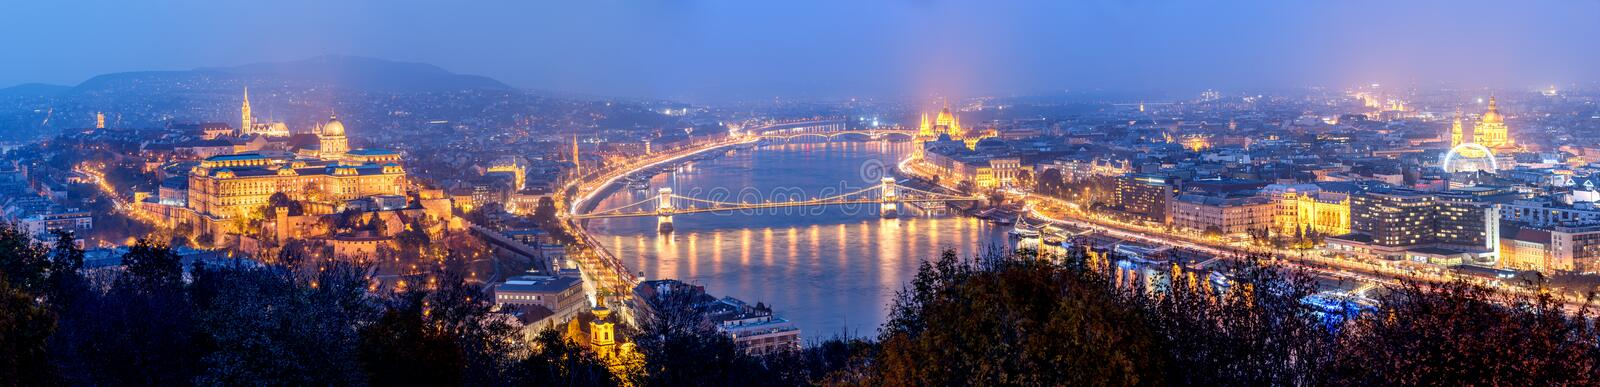 Budapest, Hungary, Europe - Panorama. Panoramic view of Budapest, the capital city of Hungary. Night view of the Buda Castle, Parliament Building, bridges over royalty free stock photos